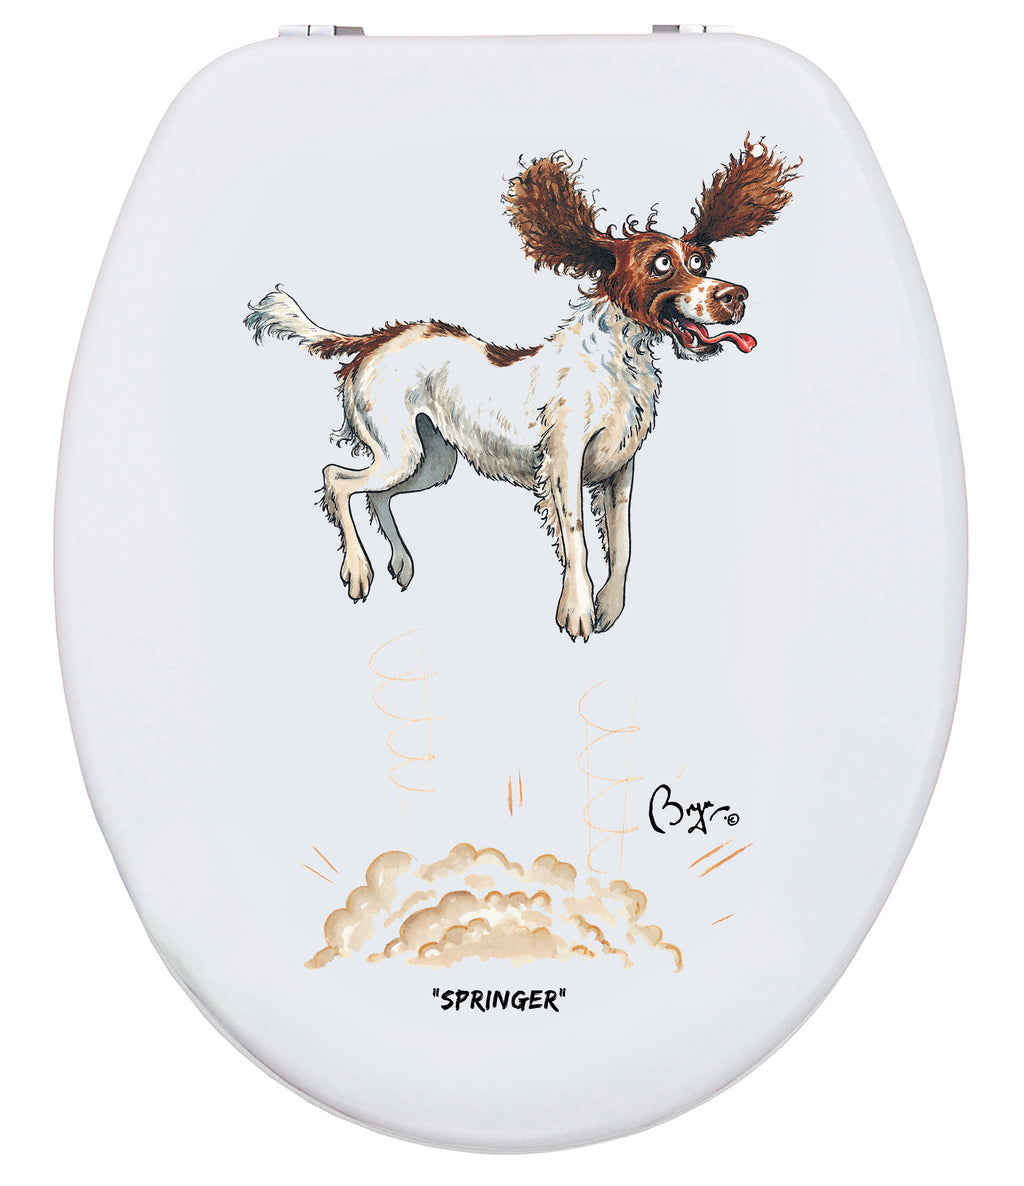 Springer - Bryn Parry- Toilet Seat.